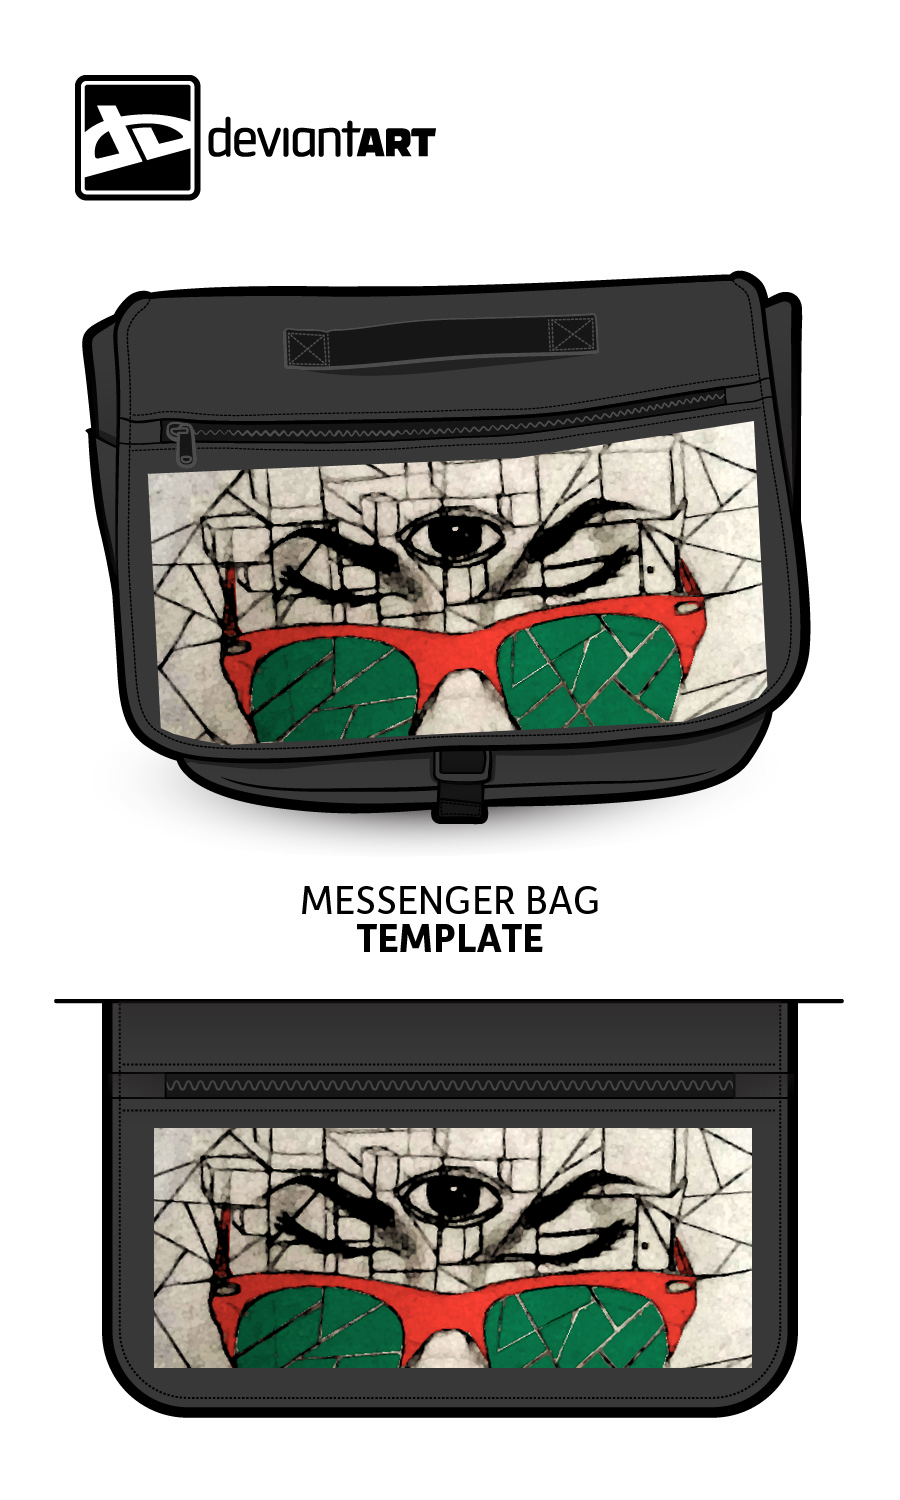 The Third Eye - cubism bag by Evecast